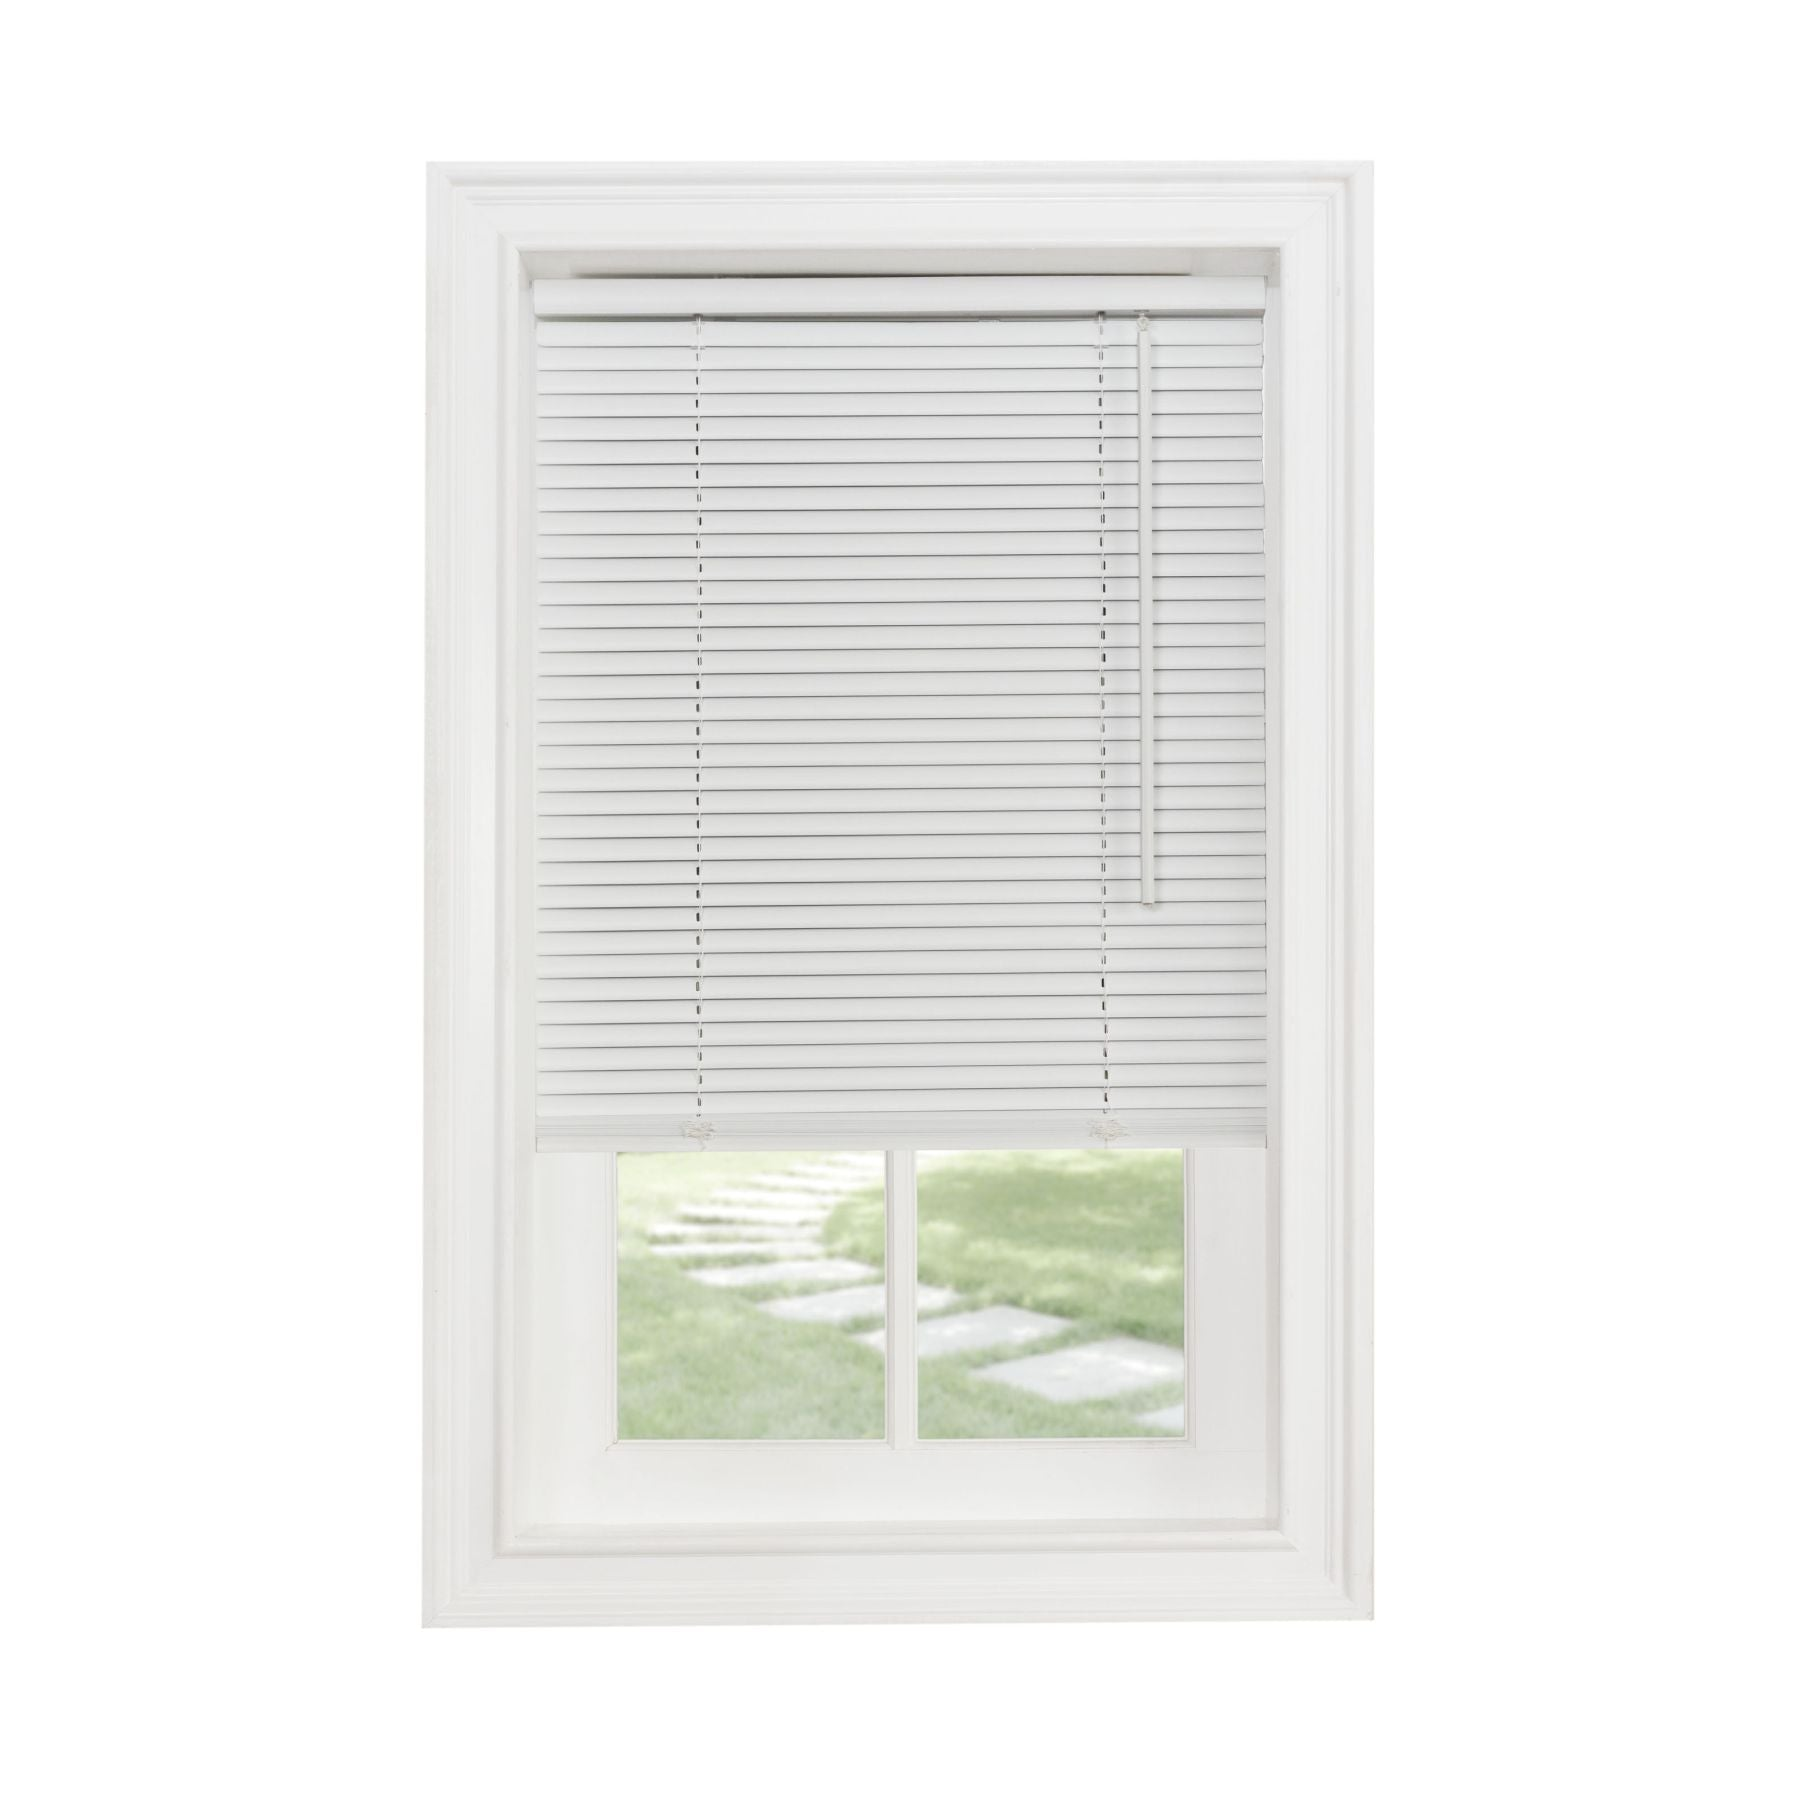 "Traditional Elegance Cordless Sunrise 1"" Light Filtering Mini Blind 39x64 - White"